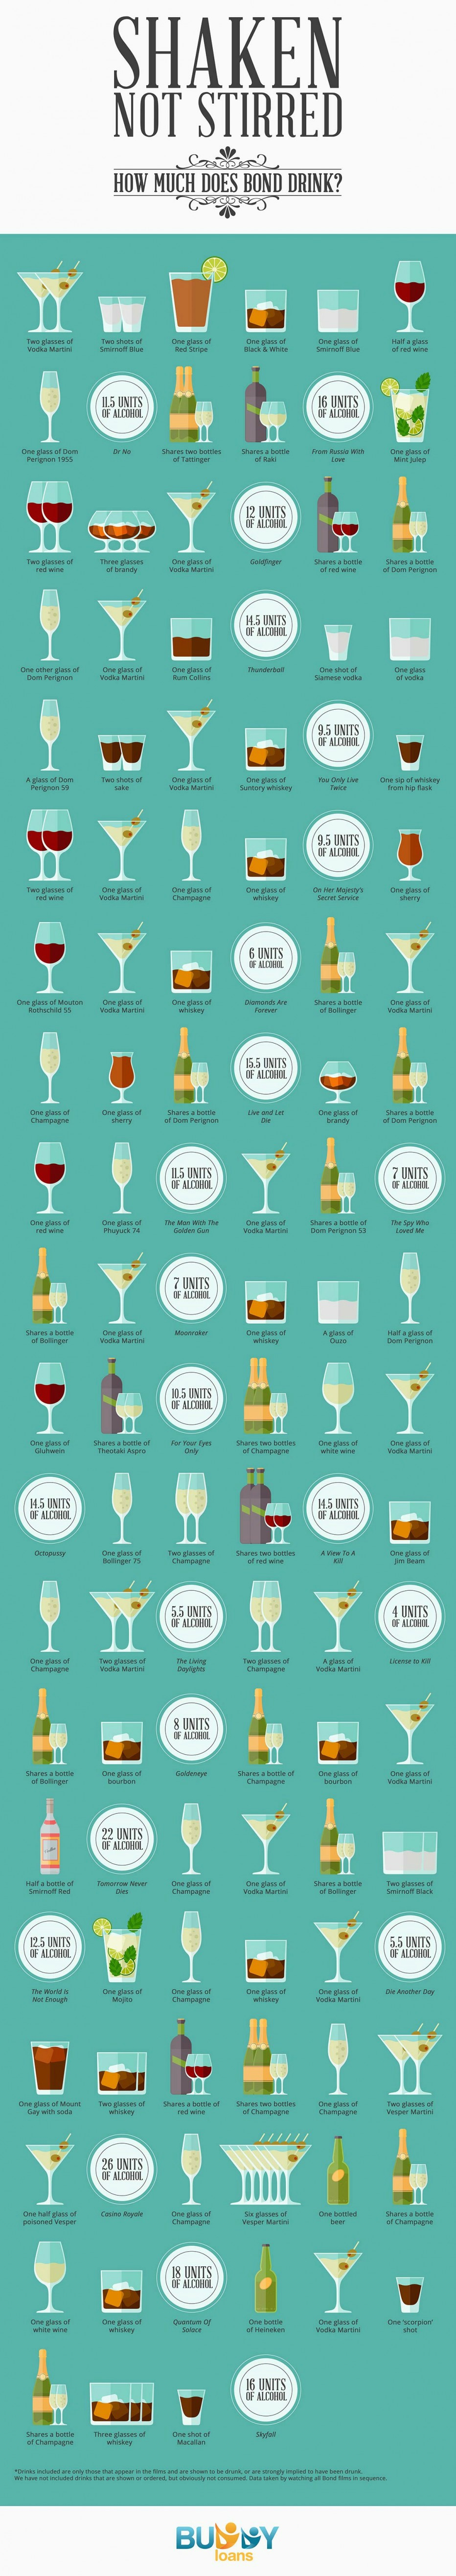 James Bond Infographic Drinking Alcohol Booze